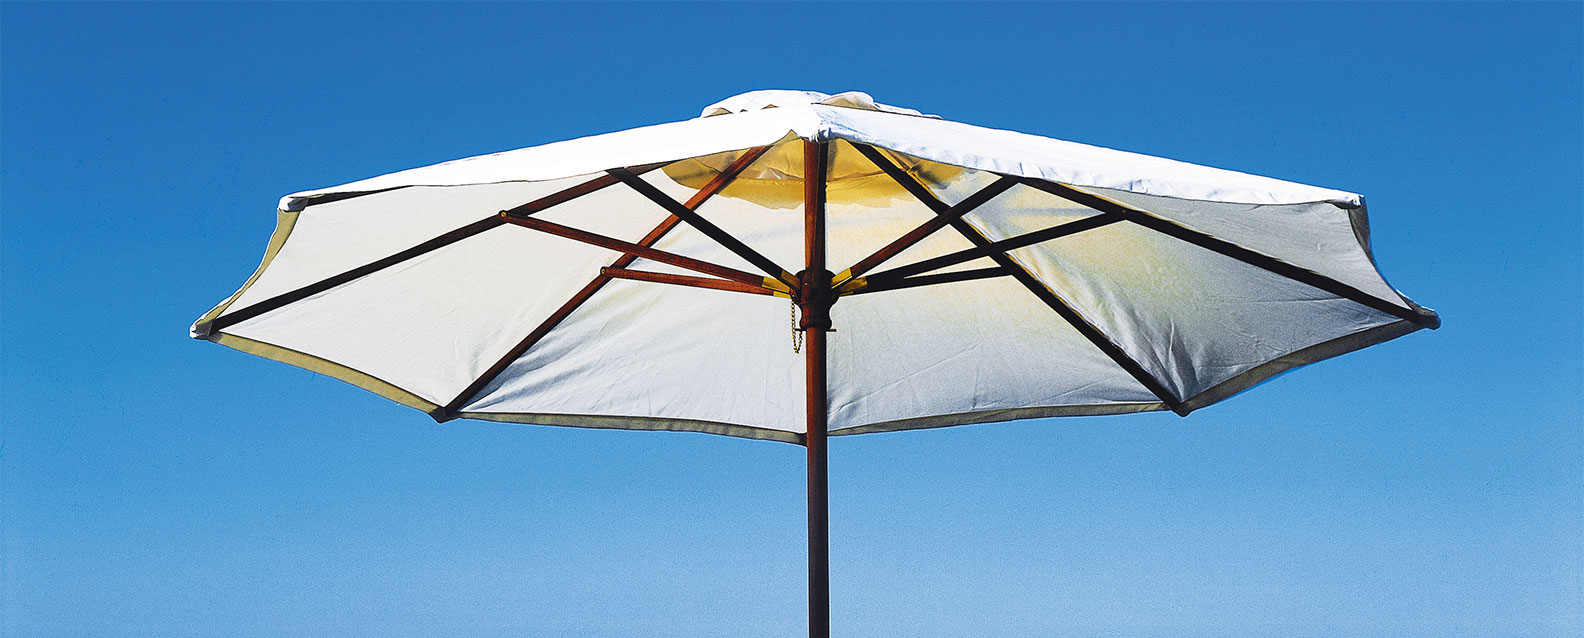 2020 Patio Umbrellas And Market Umbrellas (Gallery 17 of 20)